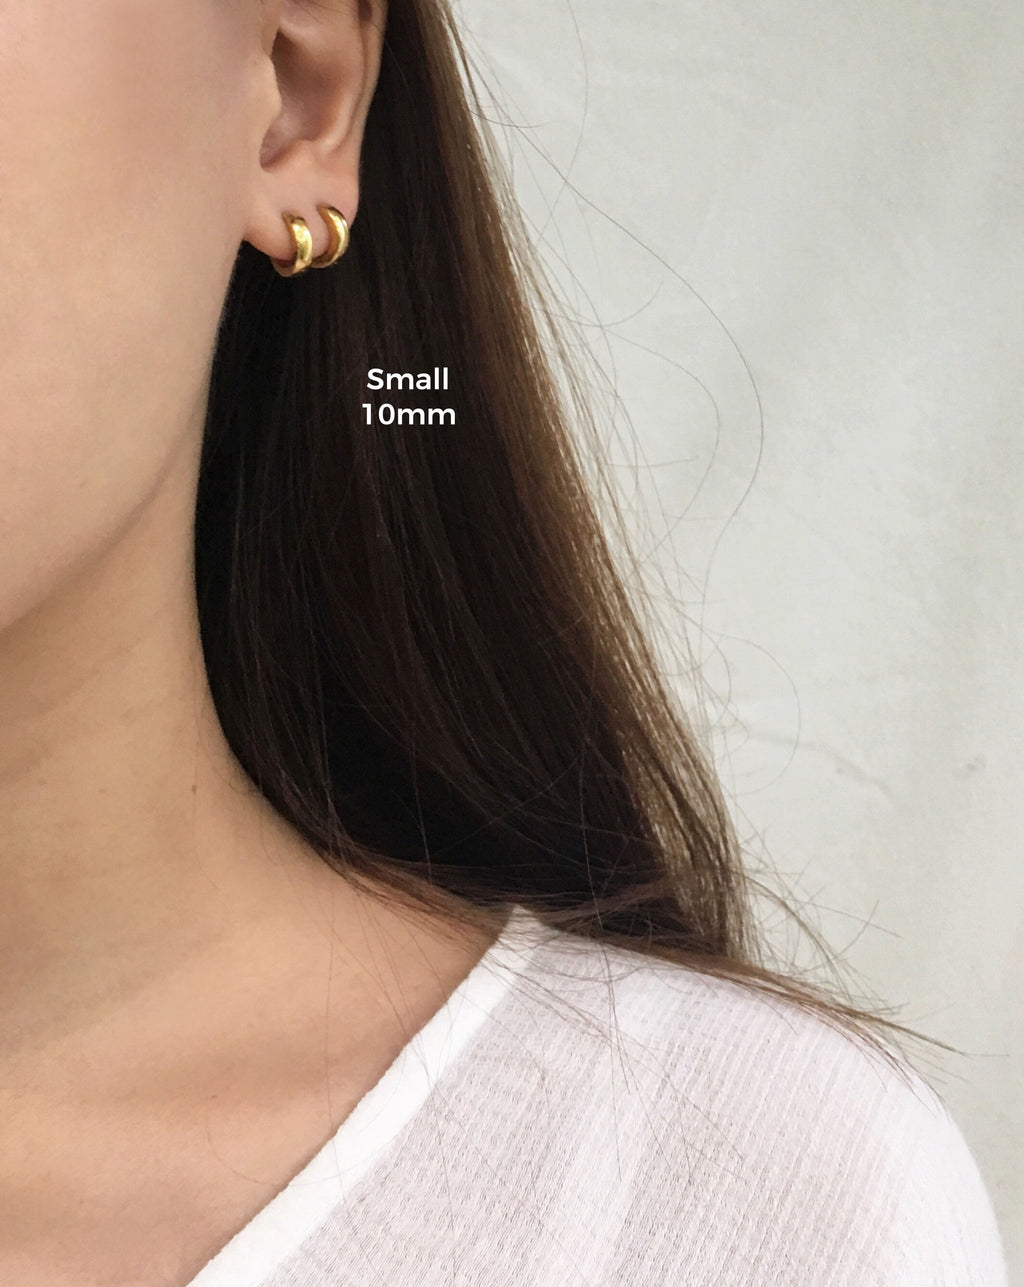 Extra tiny continuous hoop earrings with hinged closure - Ise Hoops in 10mm outer diameter fits snugly around earlobes - TheHexad